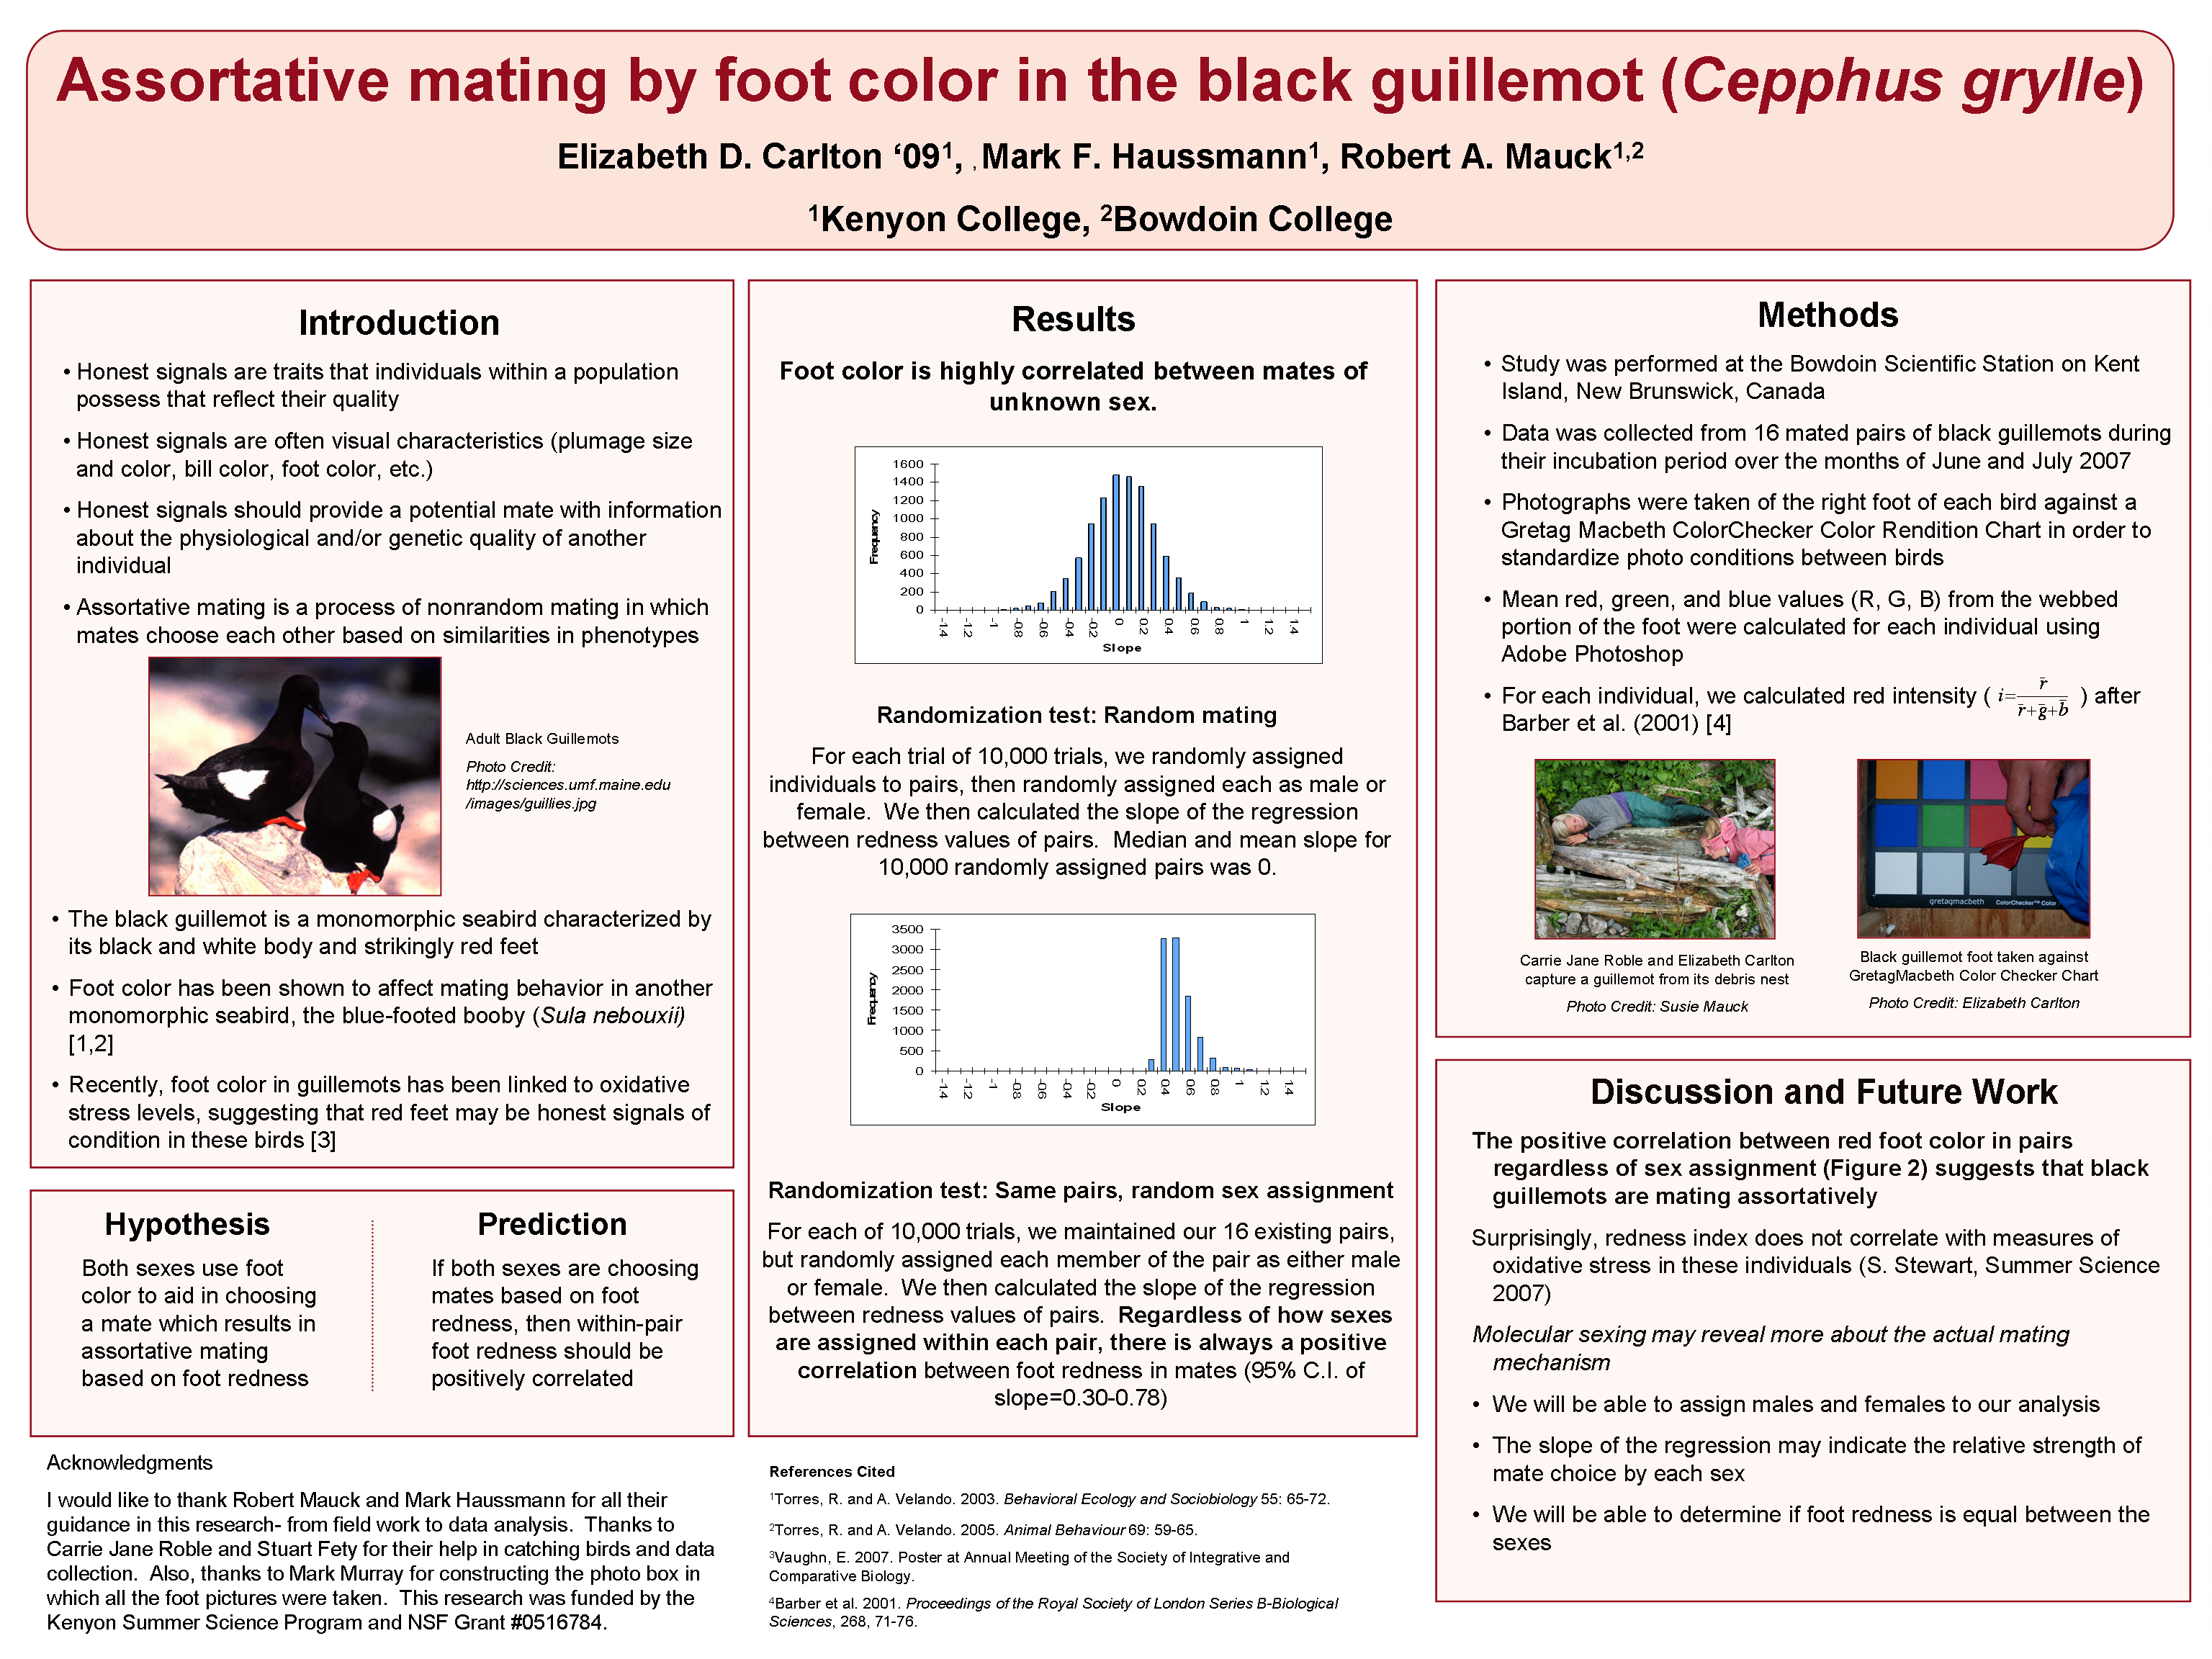 scientific poster design and layout fonts colors contrasts ...